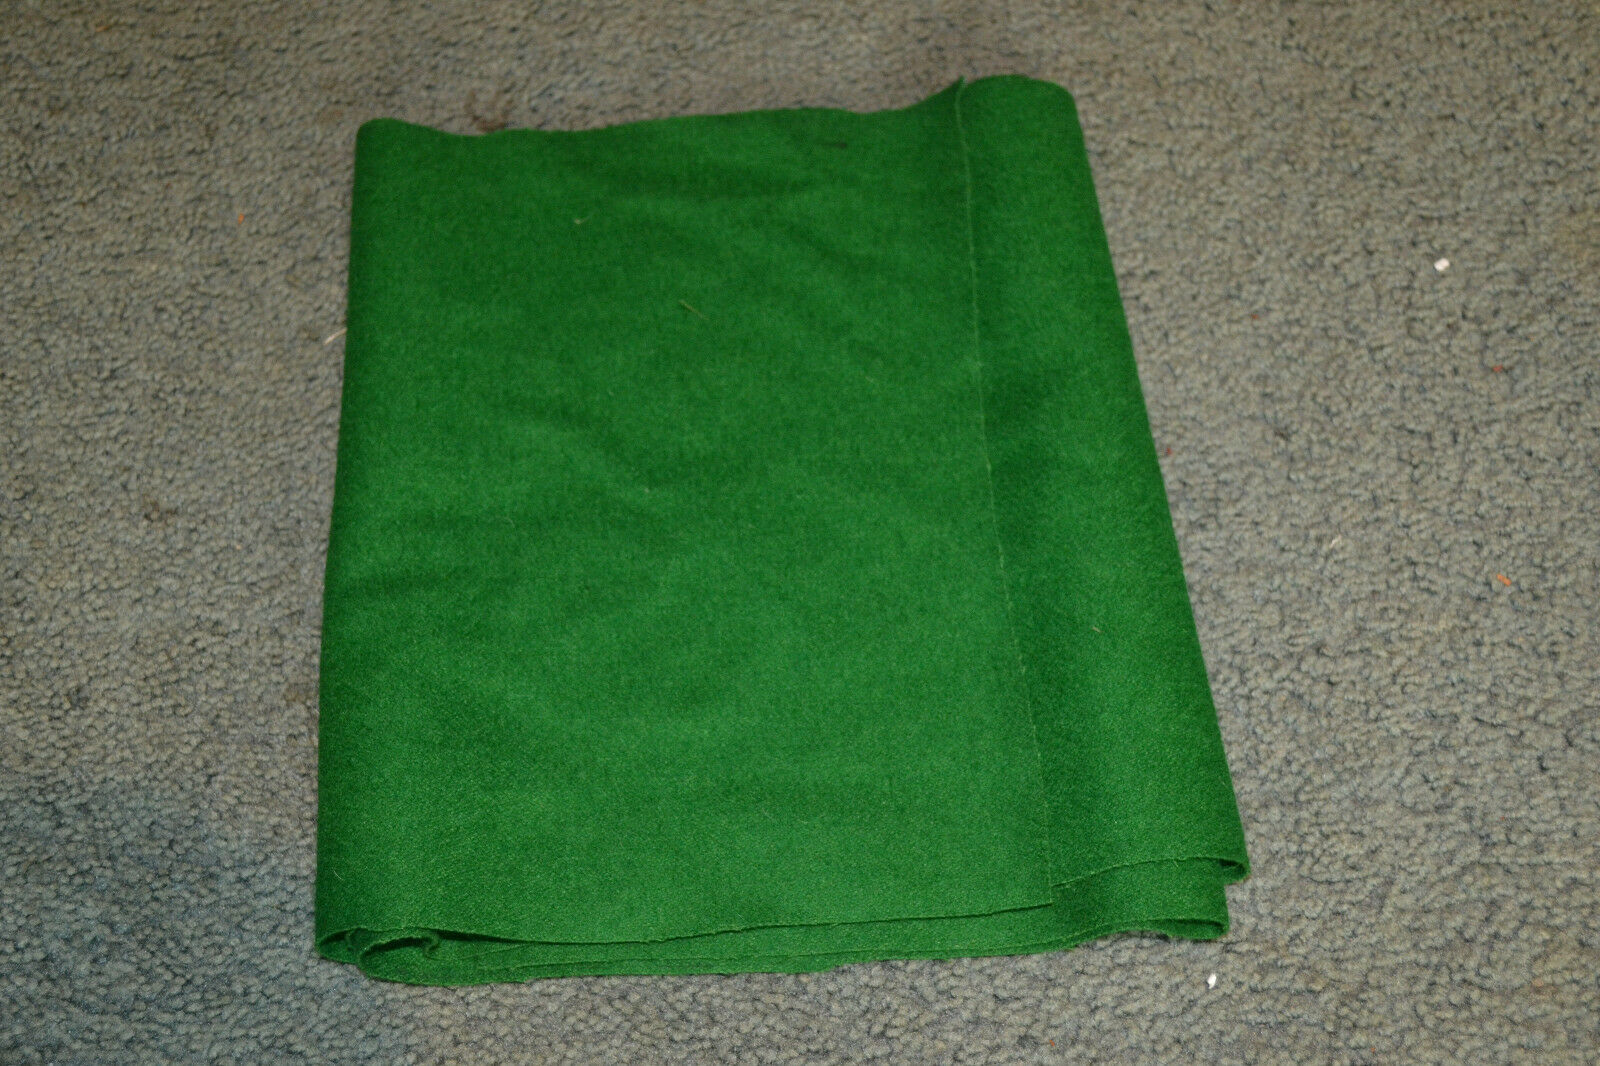 "vtg Fabric Remnant Craft Felt Green Lamp base Figurine  NOS 68"" long x 11"" wide"